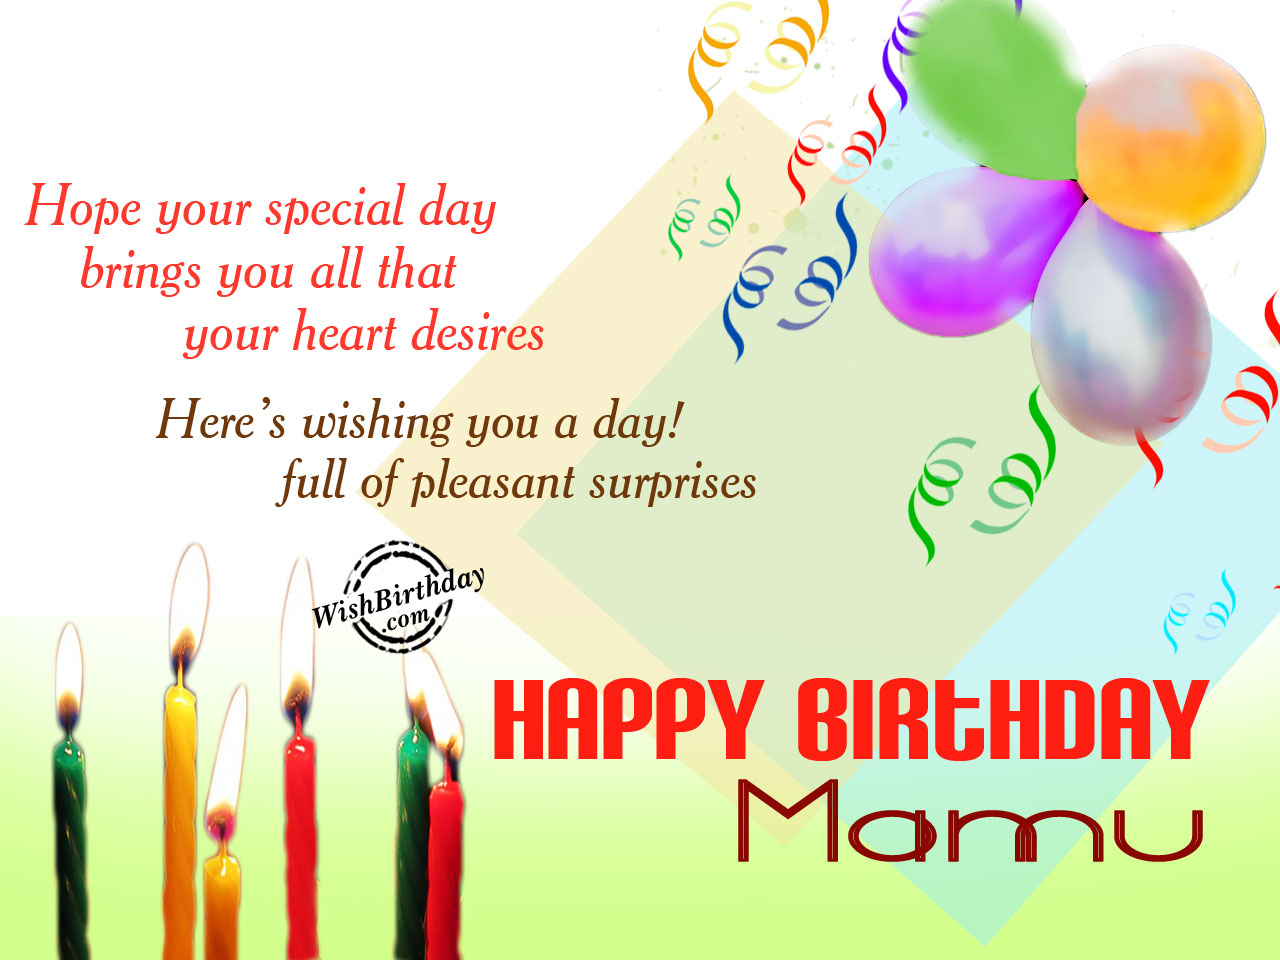 Birthday Wishes For Mama Ji Birthday Images Pictures Wishing Your Happy Birthday